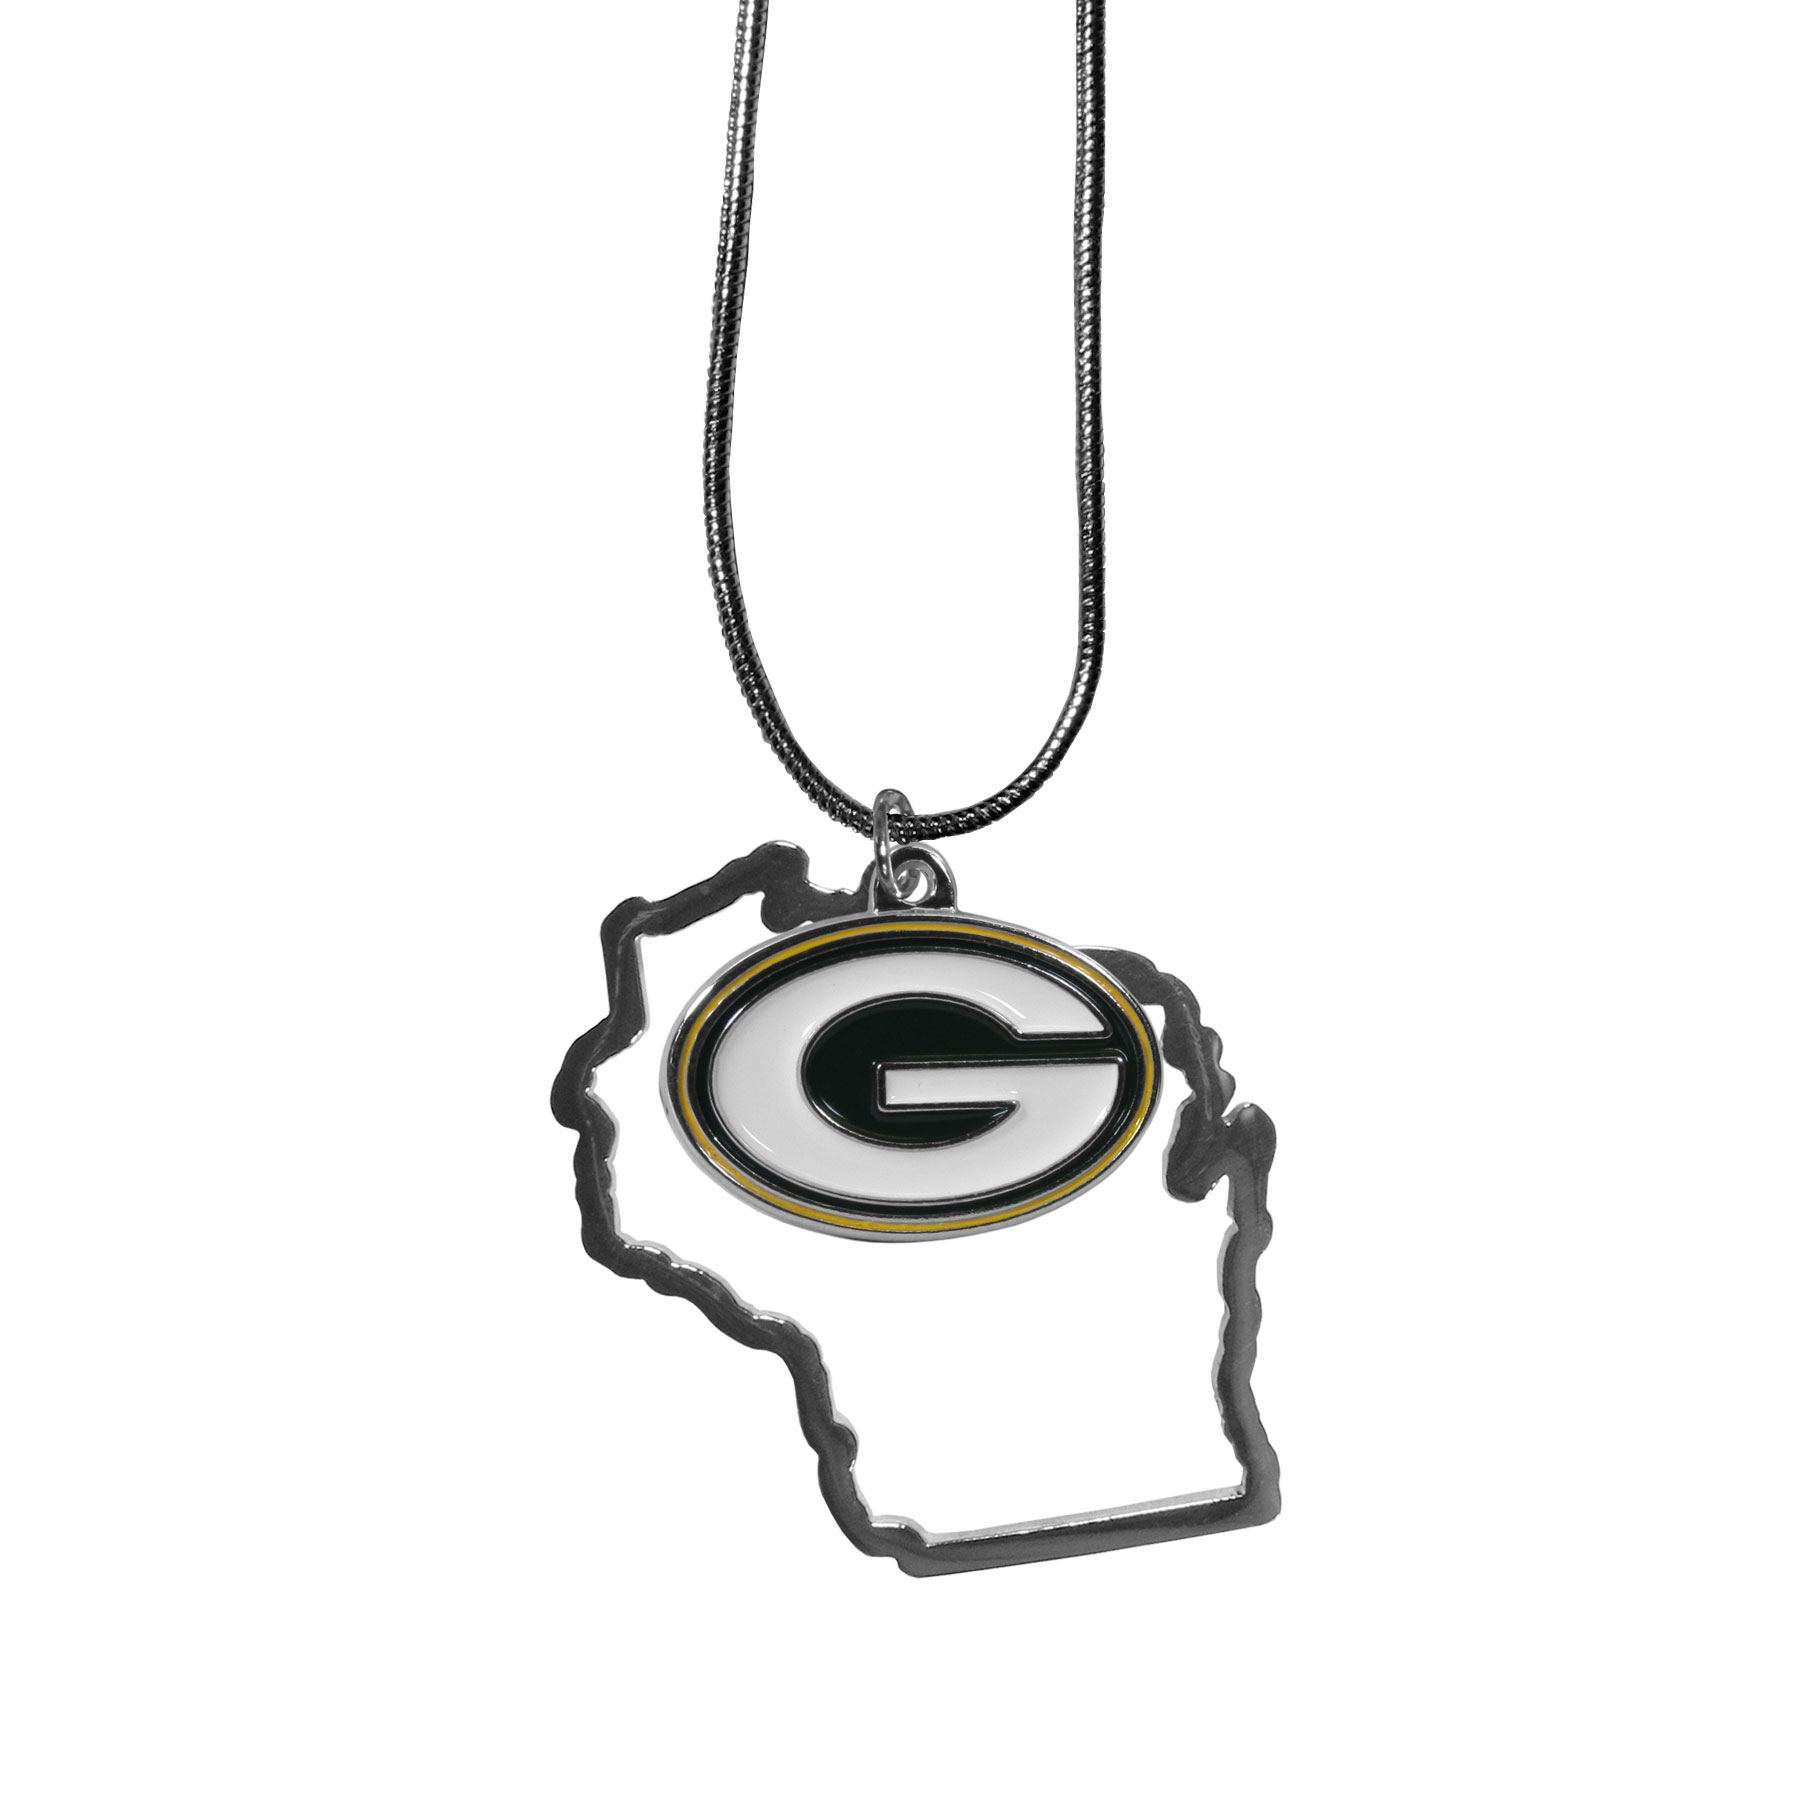 Green Bay Packers State Charm Necklace - Get in on the trend! State themes are a trend that just keeps getting more popular and these necklaces take the state style and give it a sporty twist with a Green Bay Packers added to the state outline charm. The come on a snake chain that is 22 inches long.